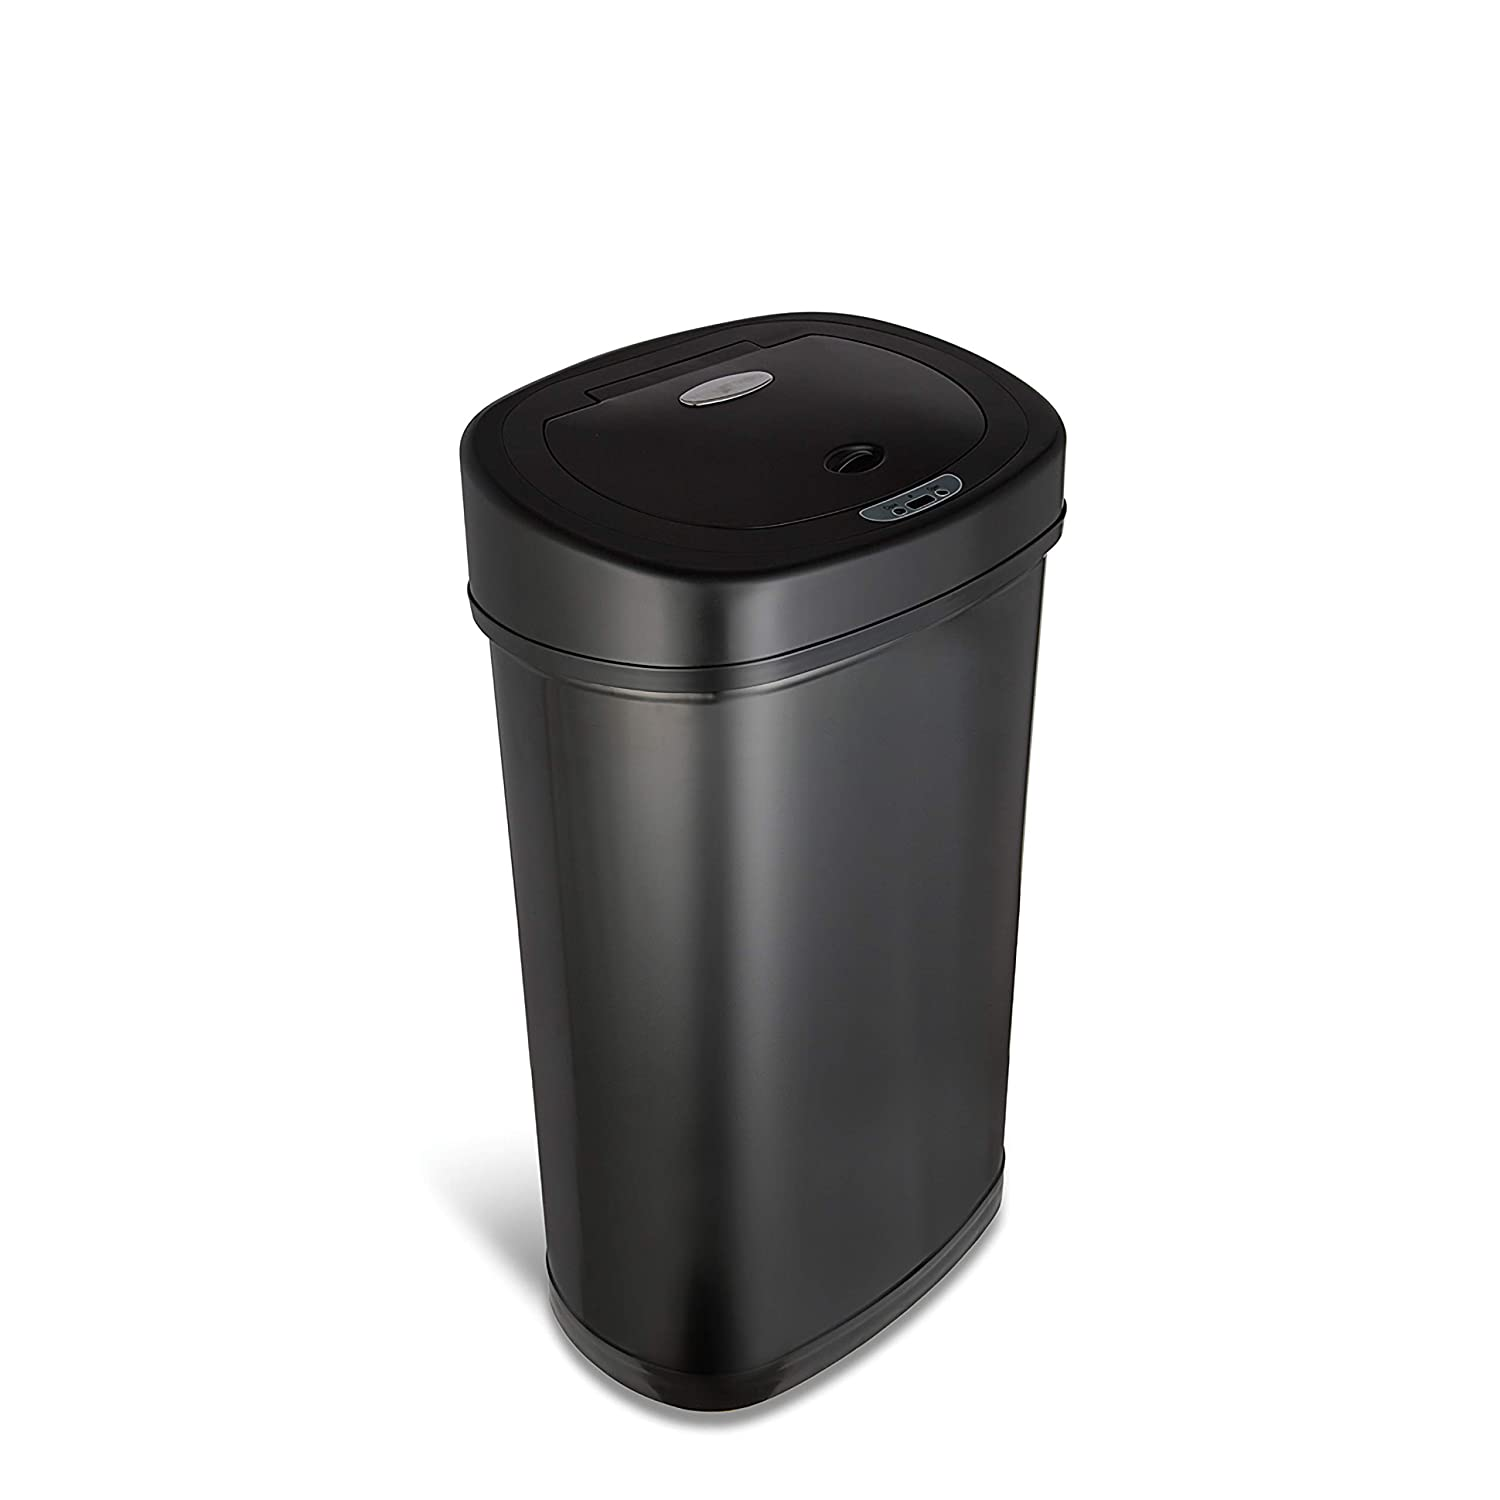 Details about Trash Cans For Kitchen Garbage Can With Lid Automatic  Touchless Metal Black Slim